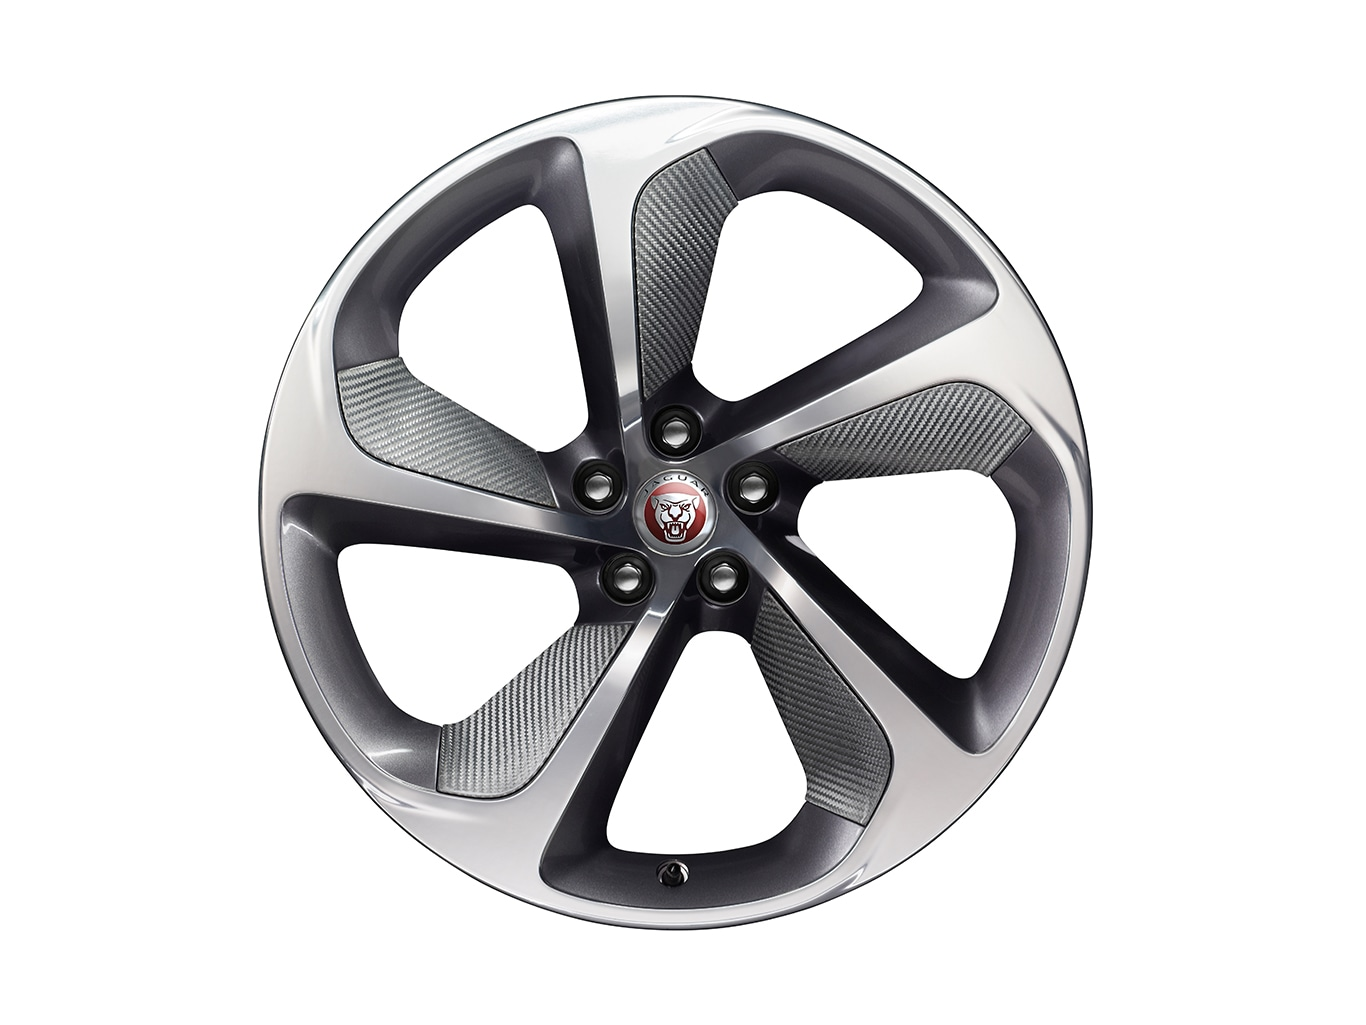 "Alloy Wheel - 20"" Style 5062, Forged, 5 spoke, Carbon Fibre Silver Weave, Front"